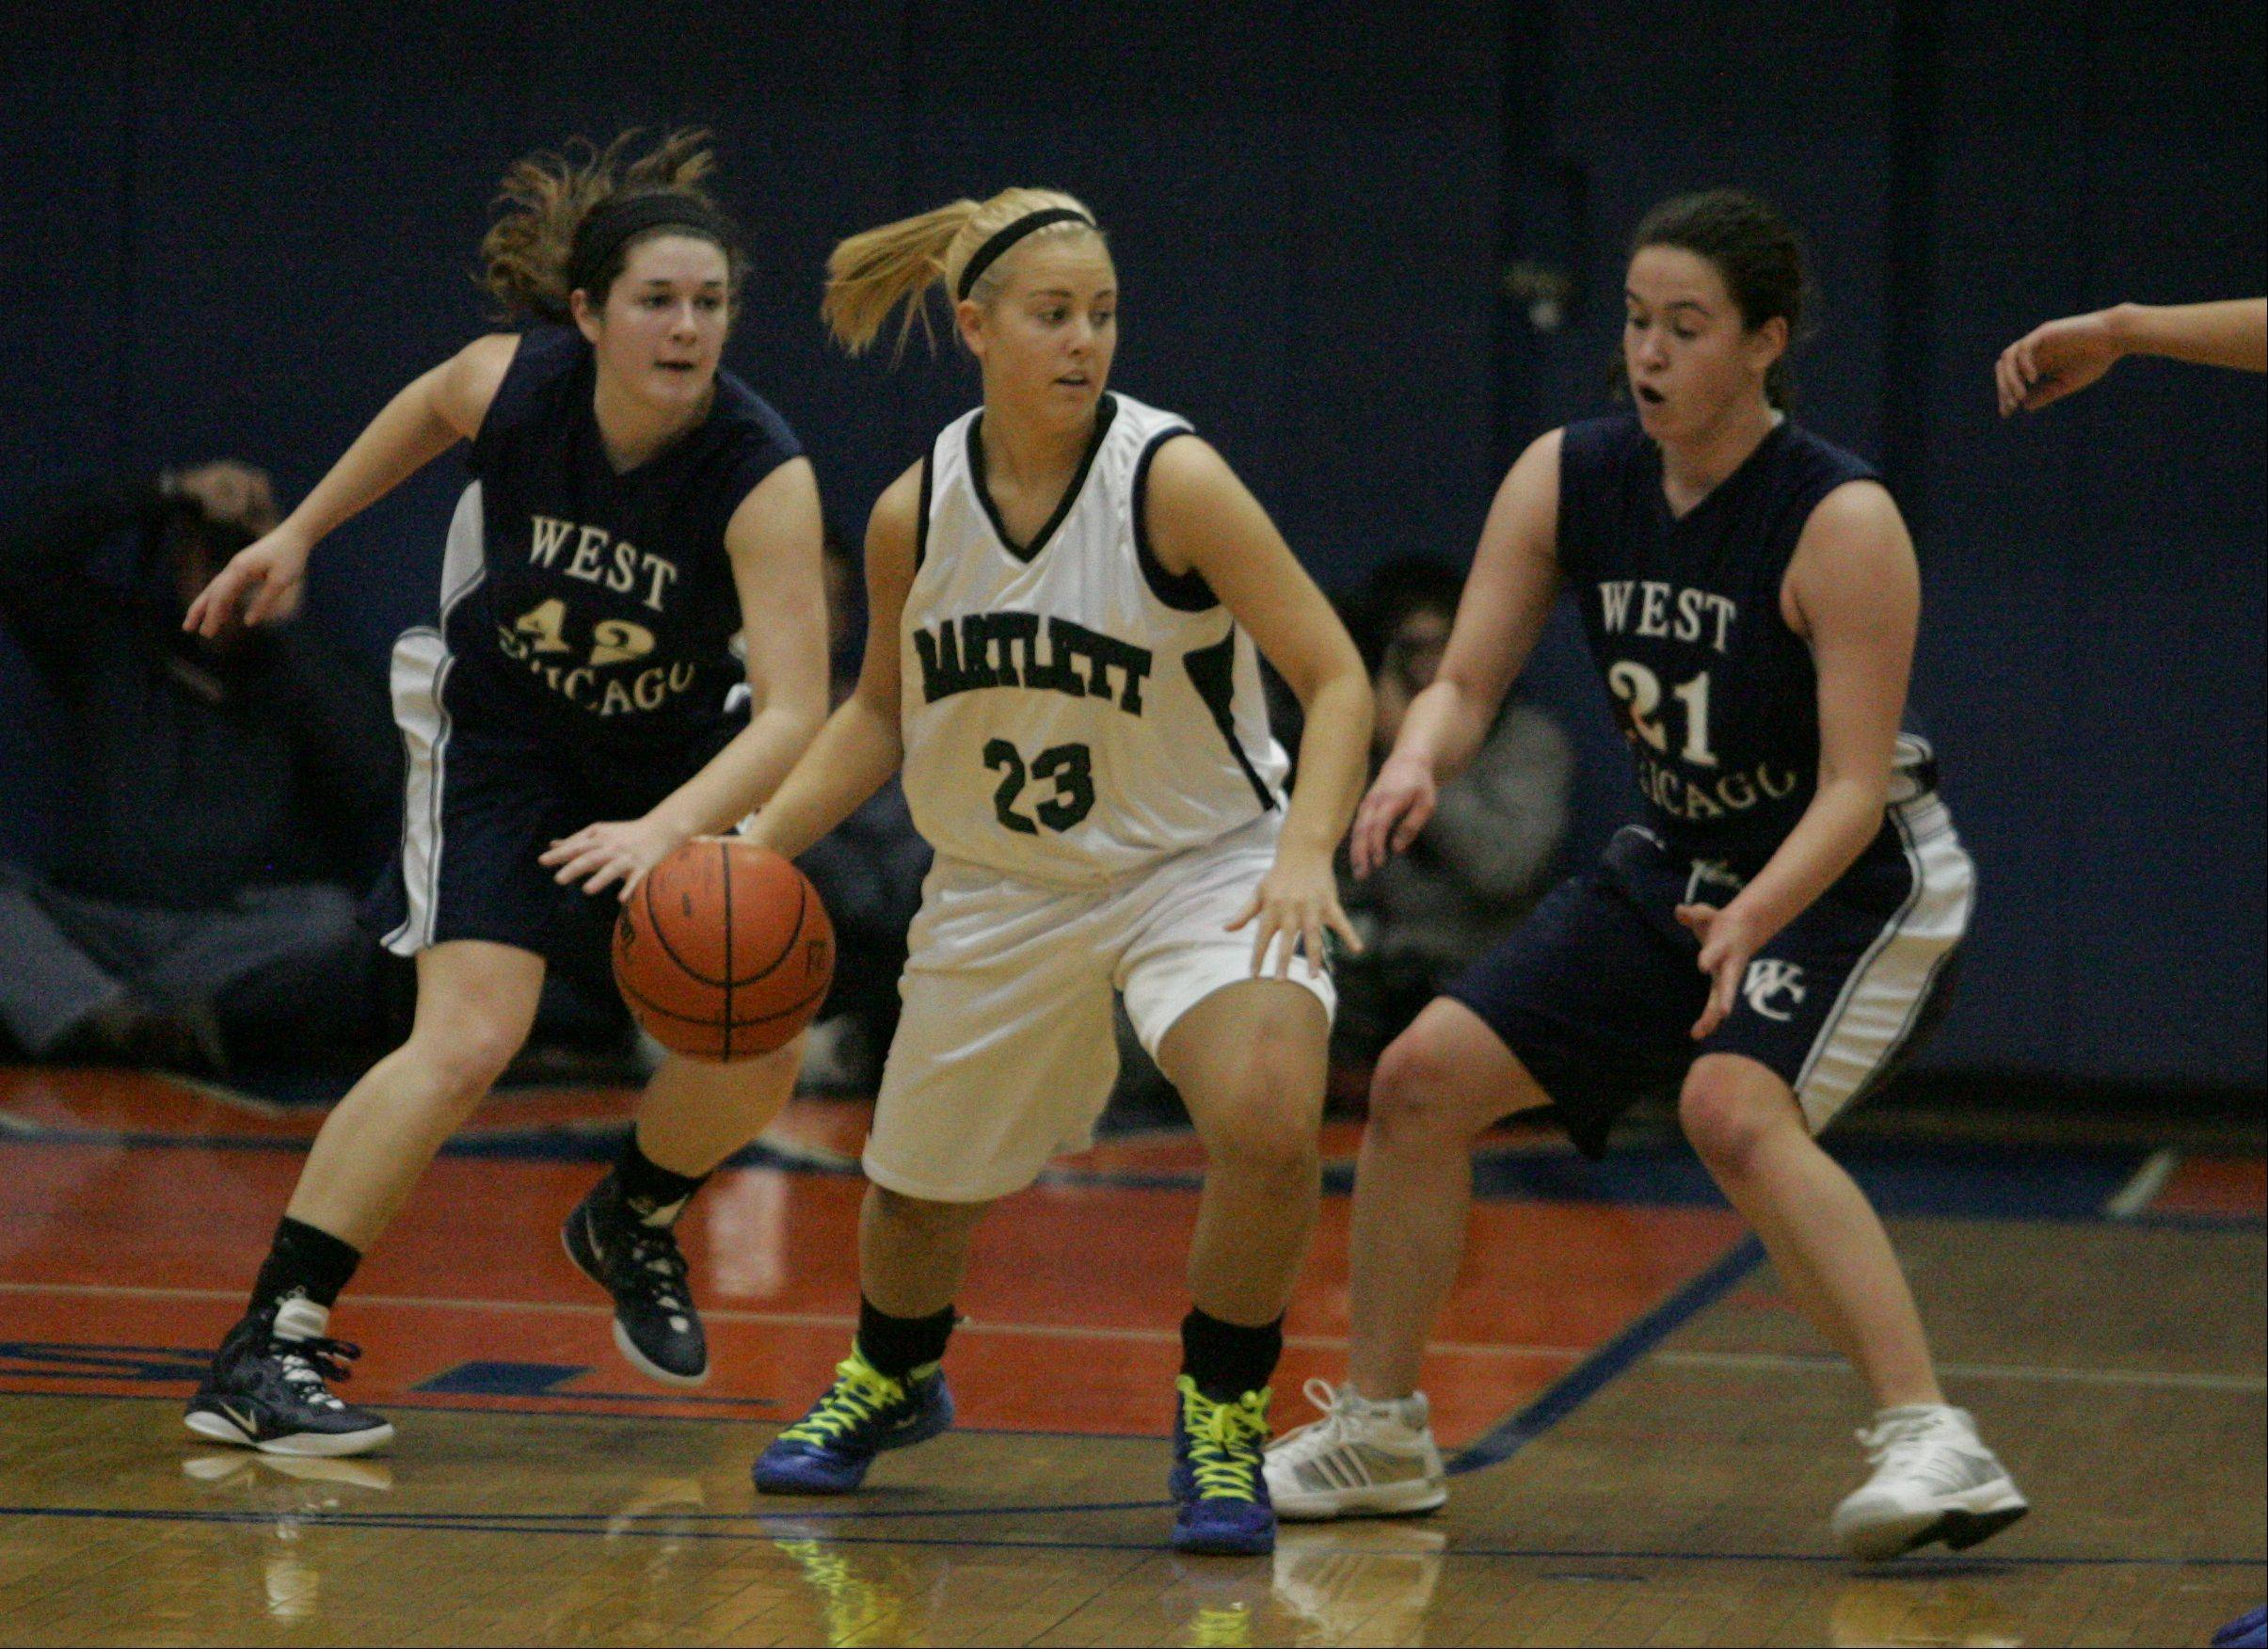 Bartlett vs. West Chicago Monday night in Class 4A girls basketball sectlional semifinals in Hoffman Estates.